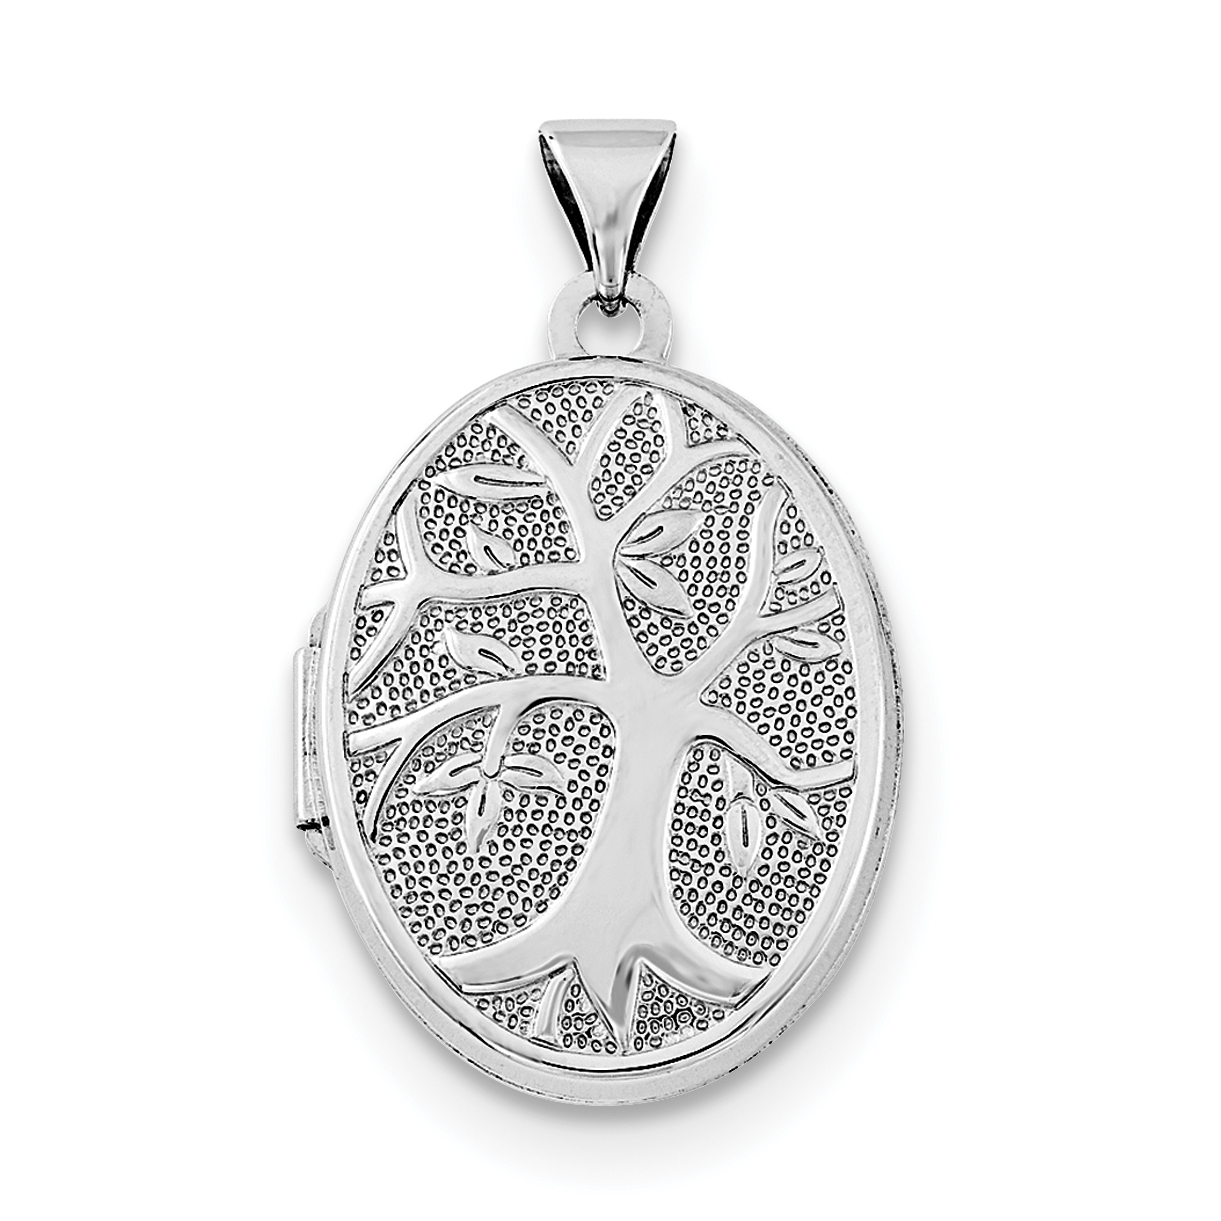 925 Sterling Silver Rhodium-Plated 21x16mm Oval Tree Locket - image 3 of 3